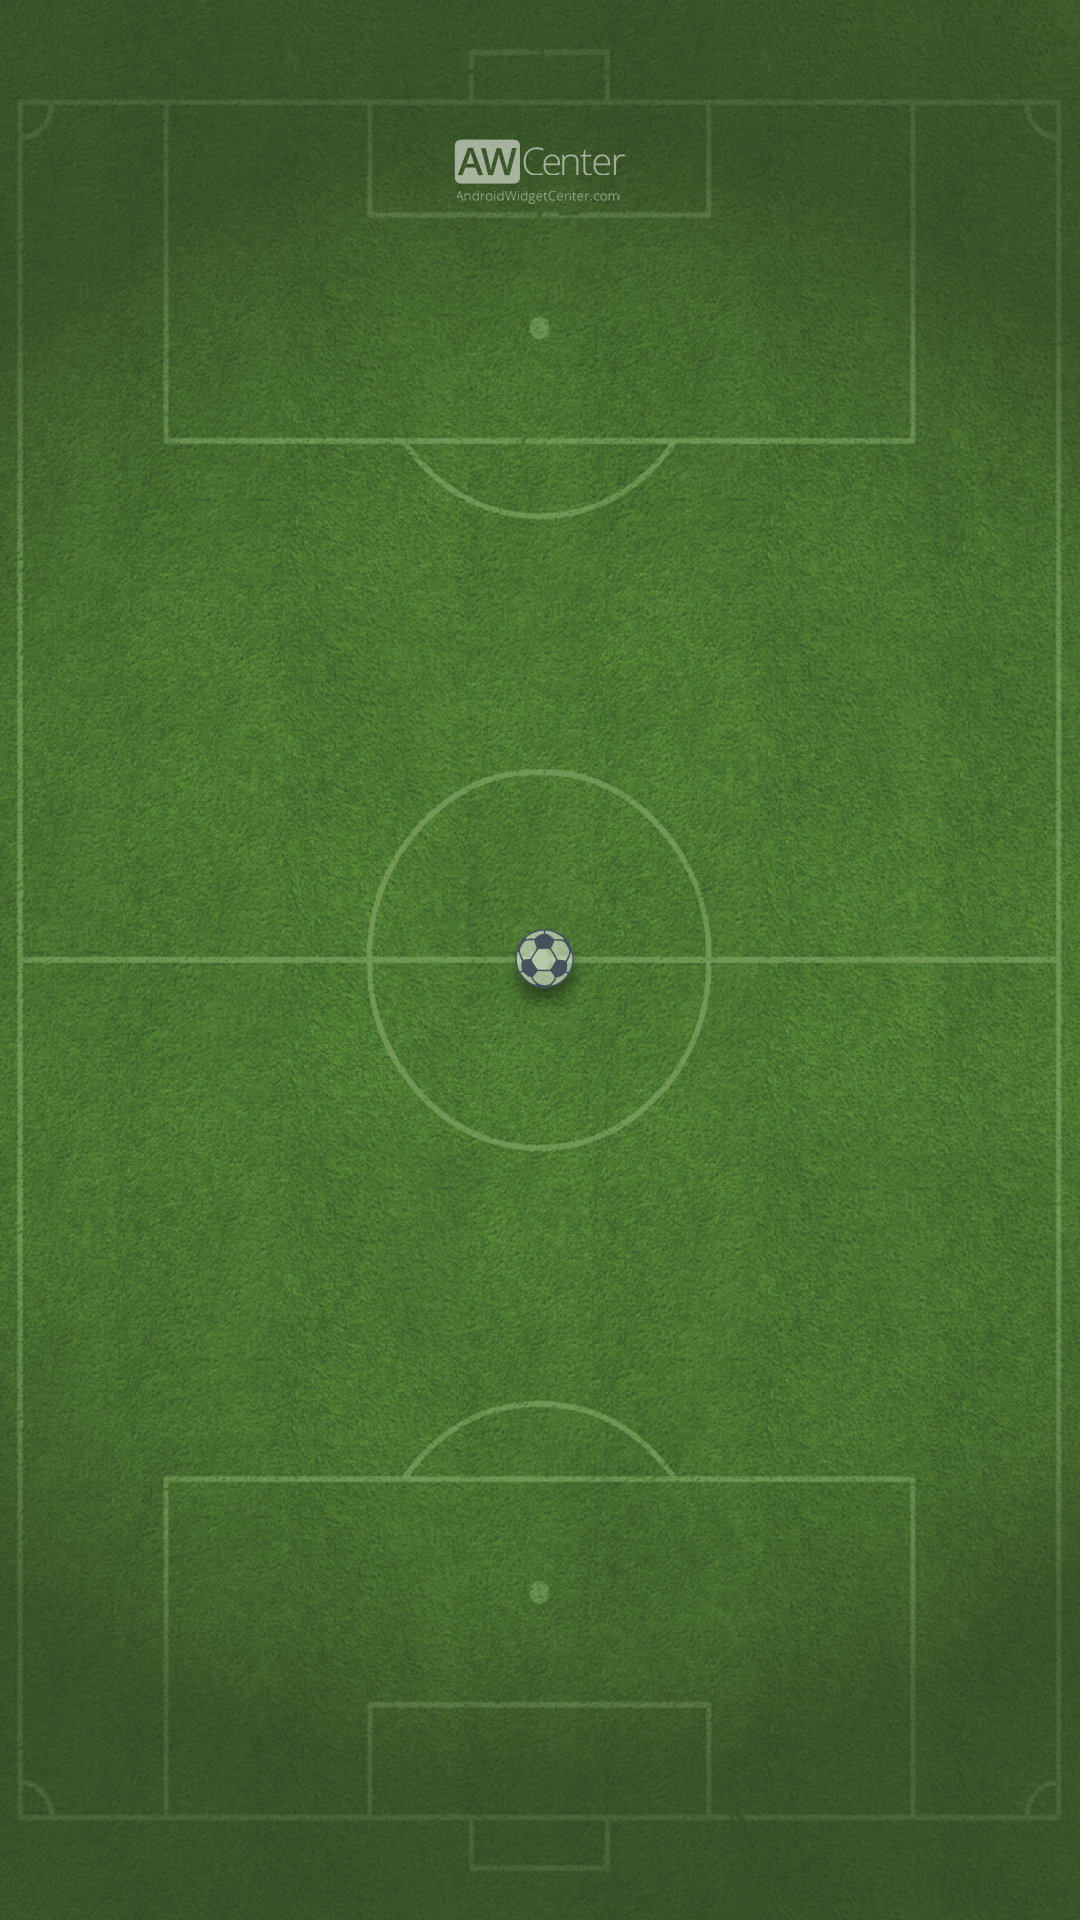 Android Wallpapers for Full HD Screens   Pack 04   AW Center 03 Android Wallpaper Soccer Pitch Preview